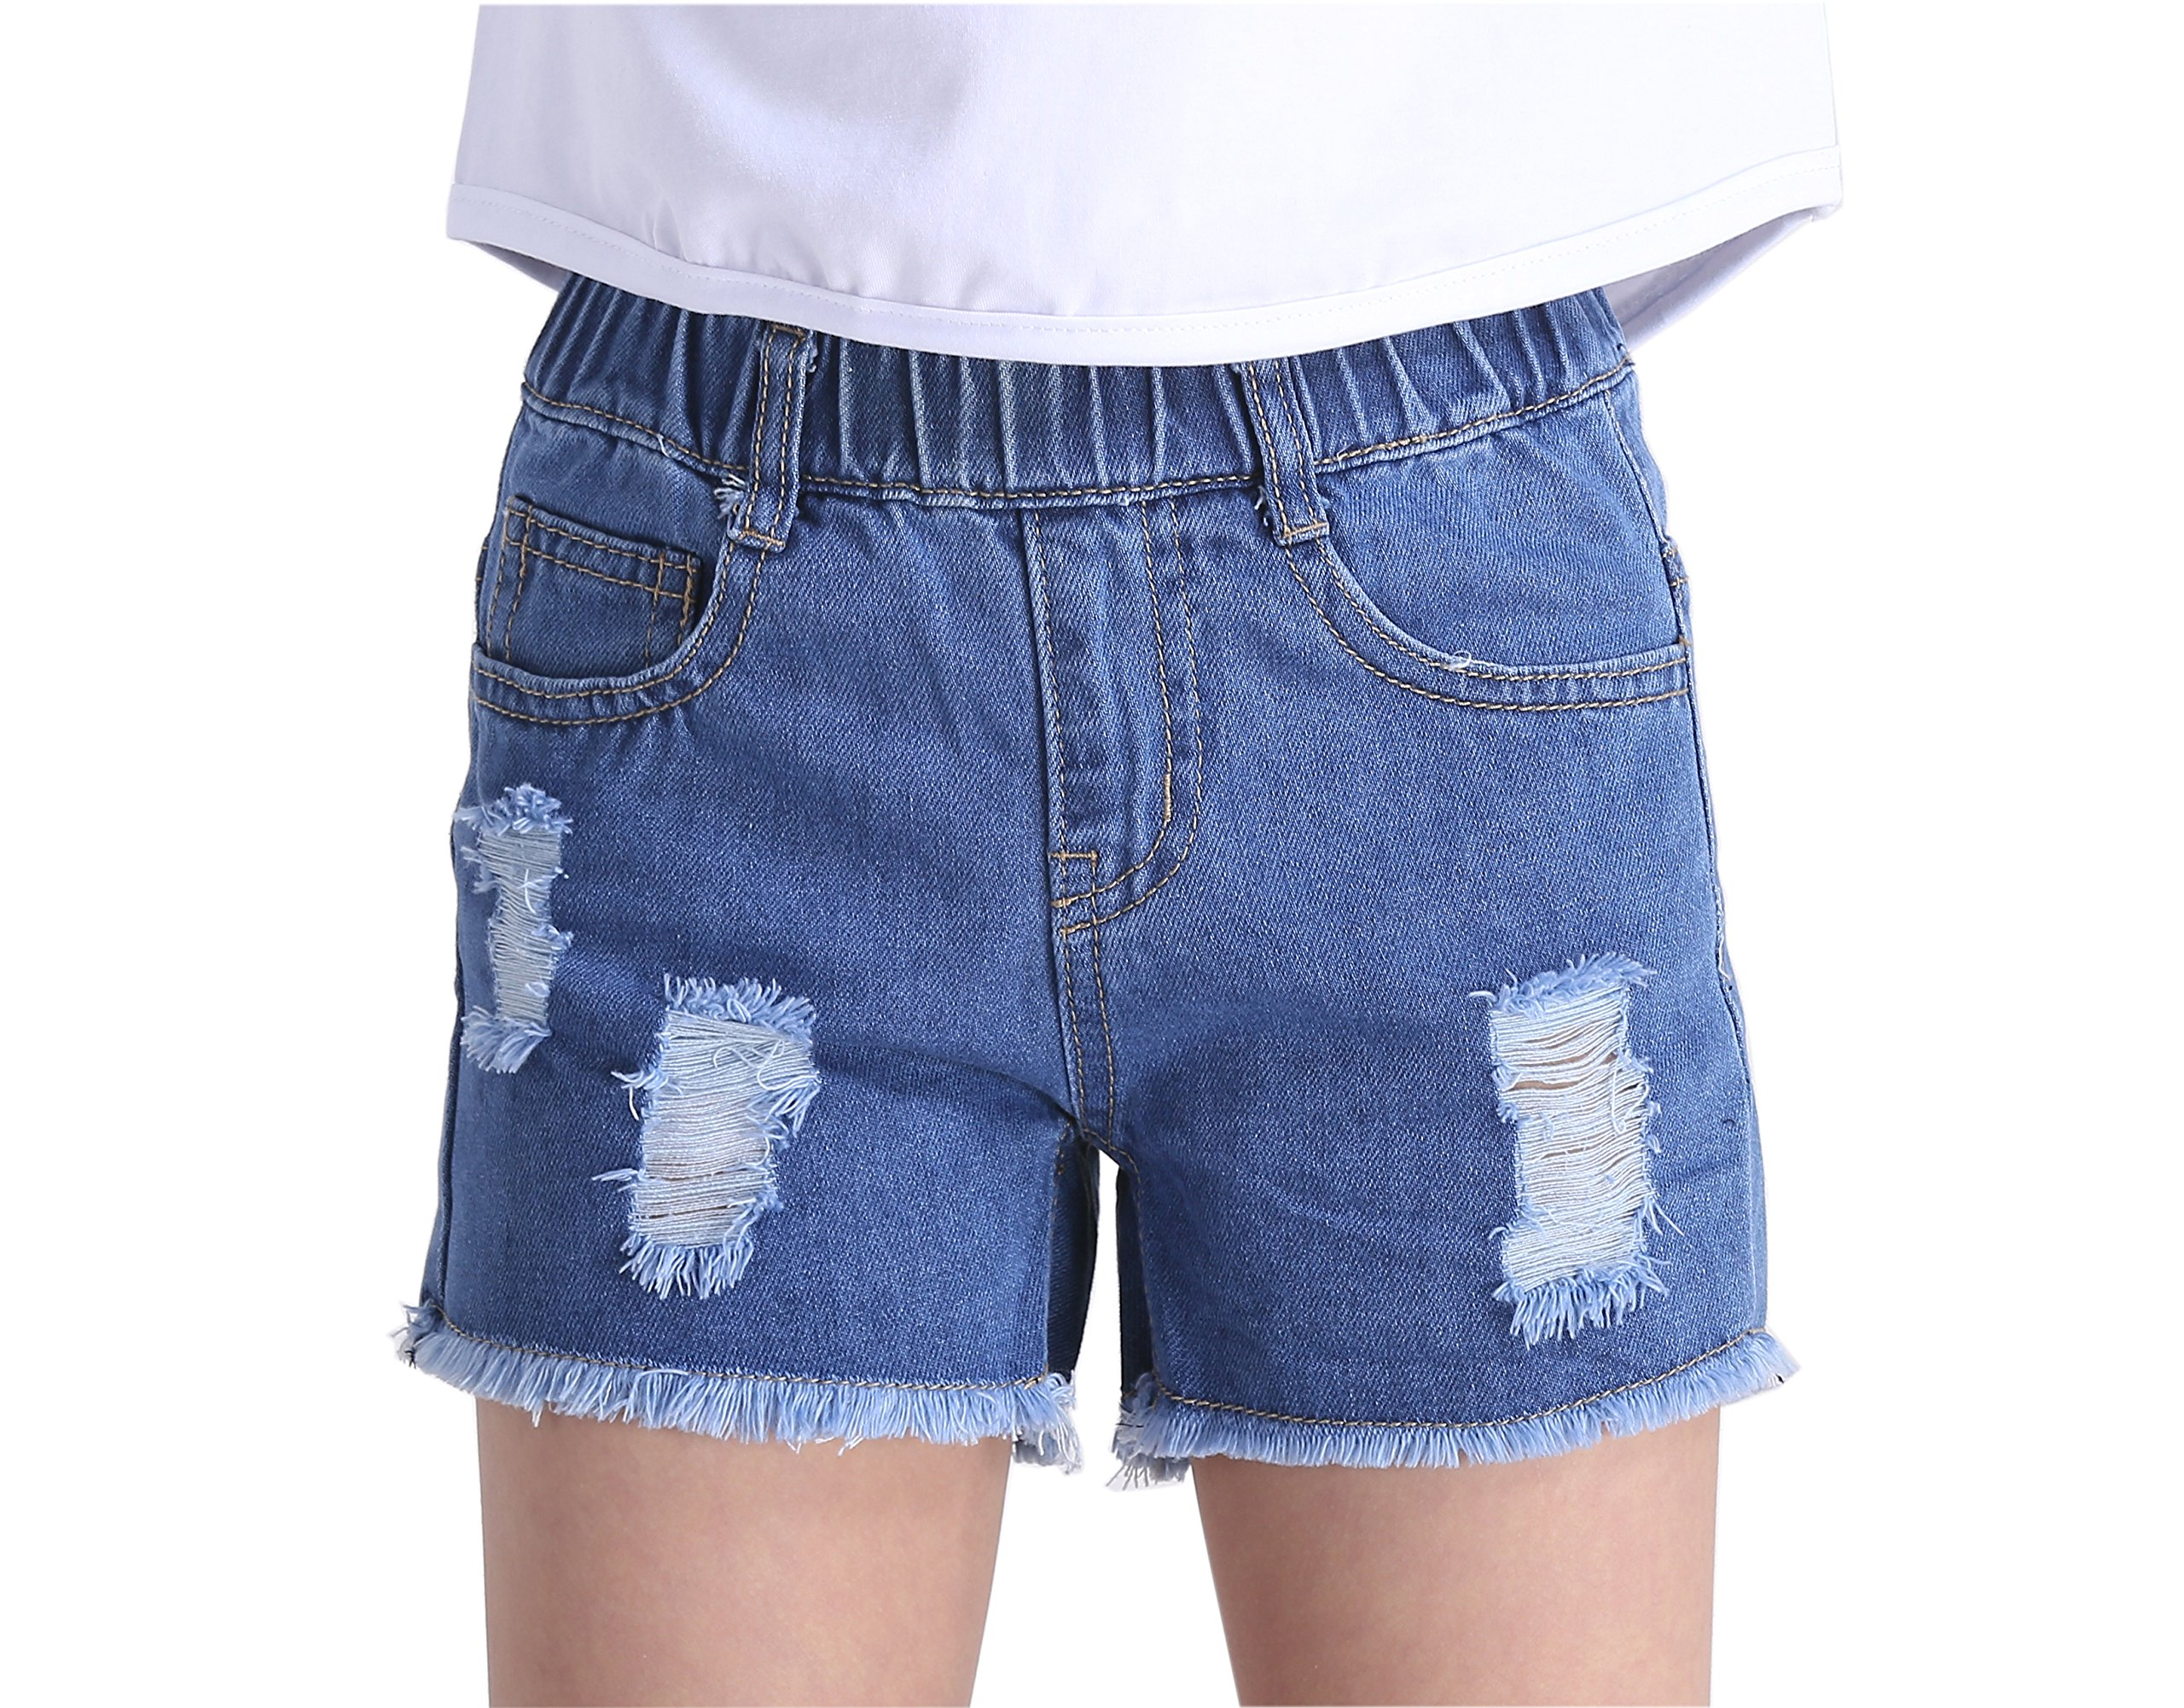 Sitmptol Big Girls Little Kids Distressed Denim Shorts Cowboy Light Blue Shorts 160